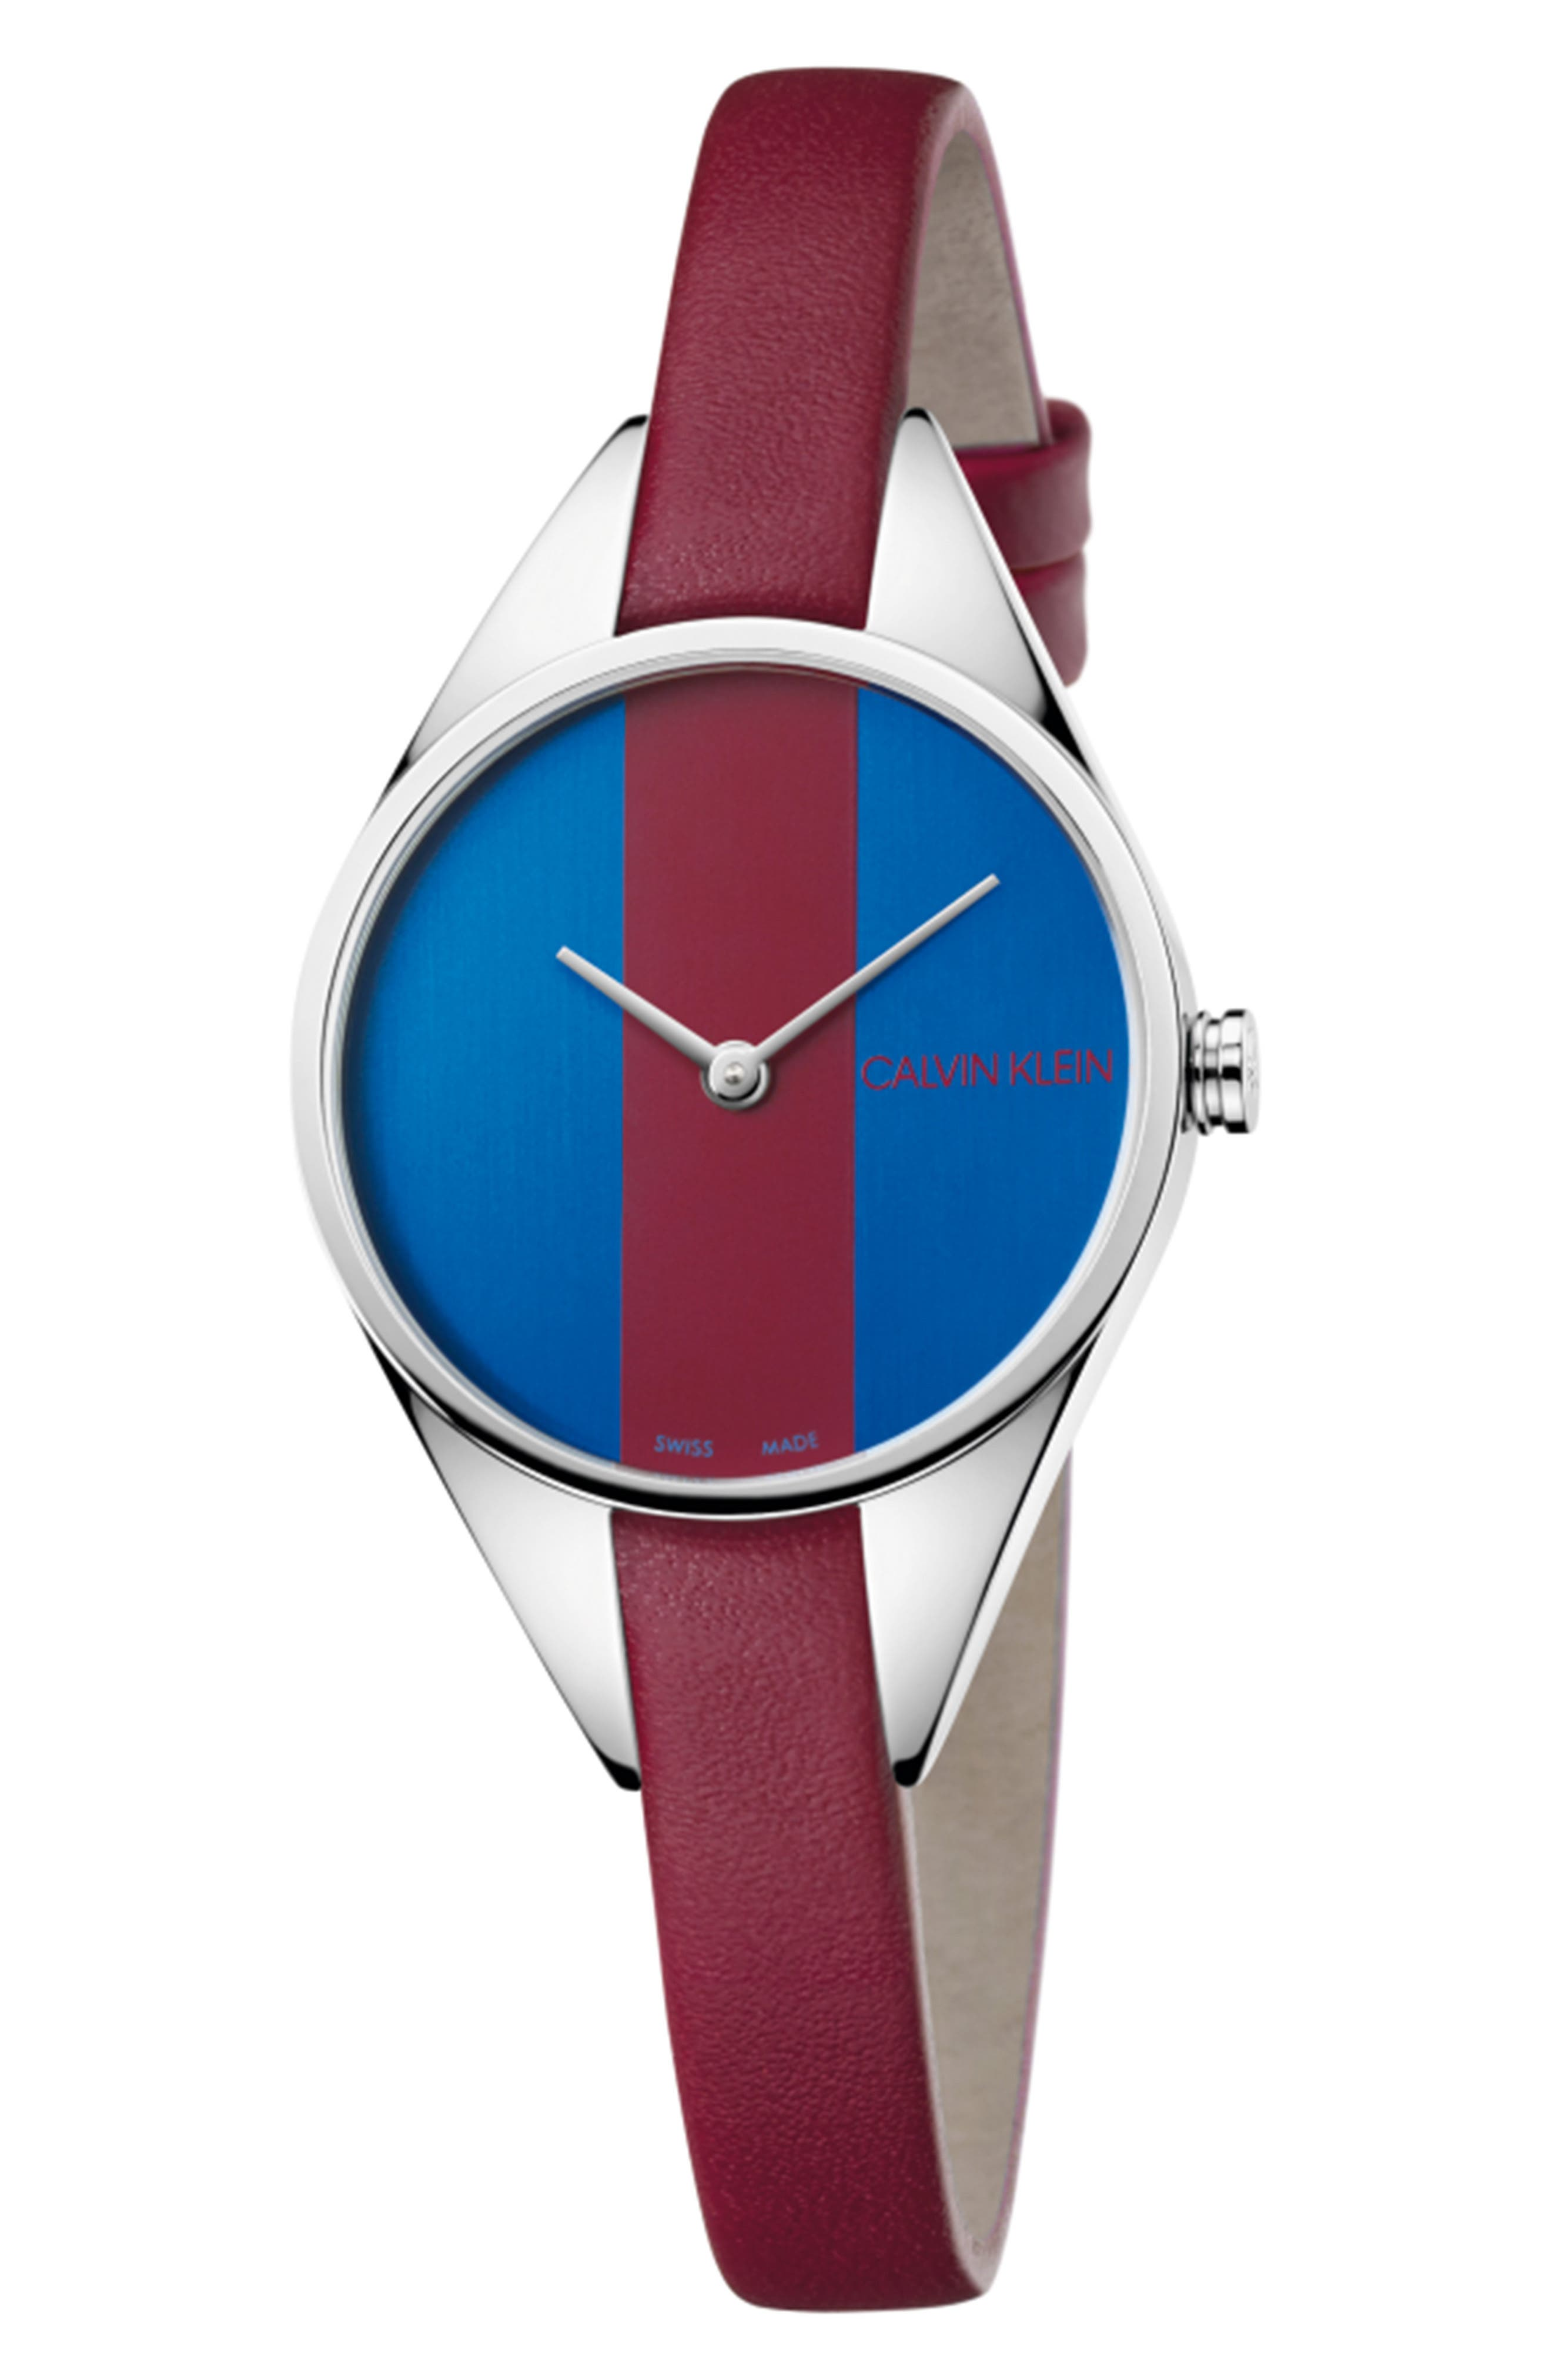 CALVIN KLEIN, Achieve Rebel Leather Band Watch, 29mm, Main thumbnail 1, color, RED/ BLUE/ SILVER